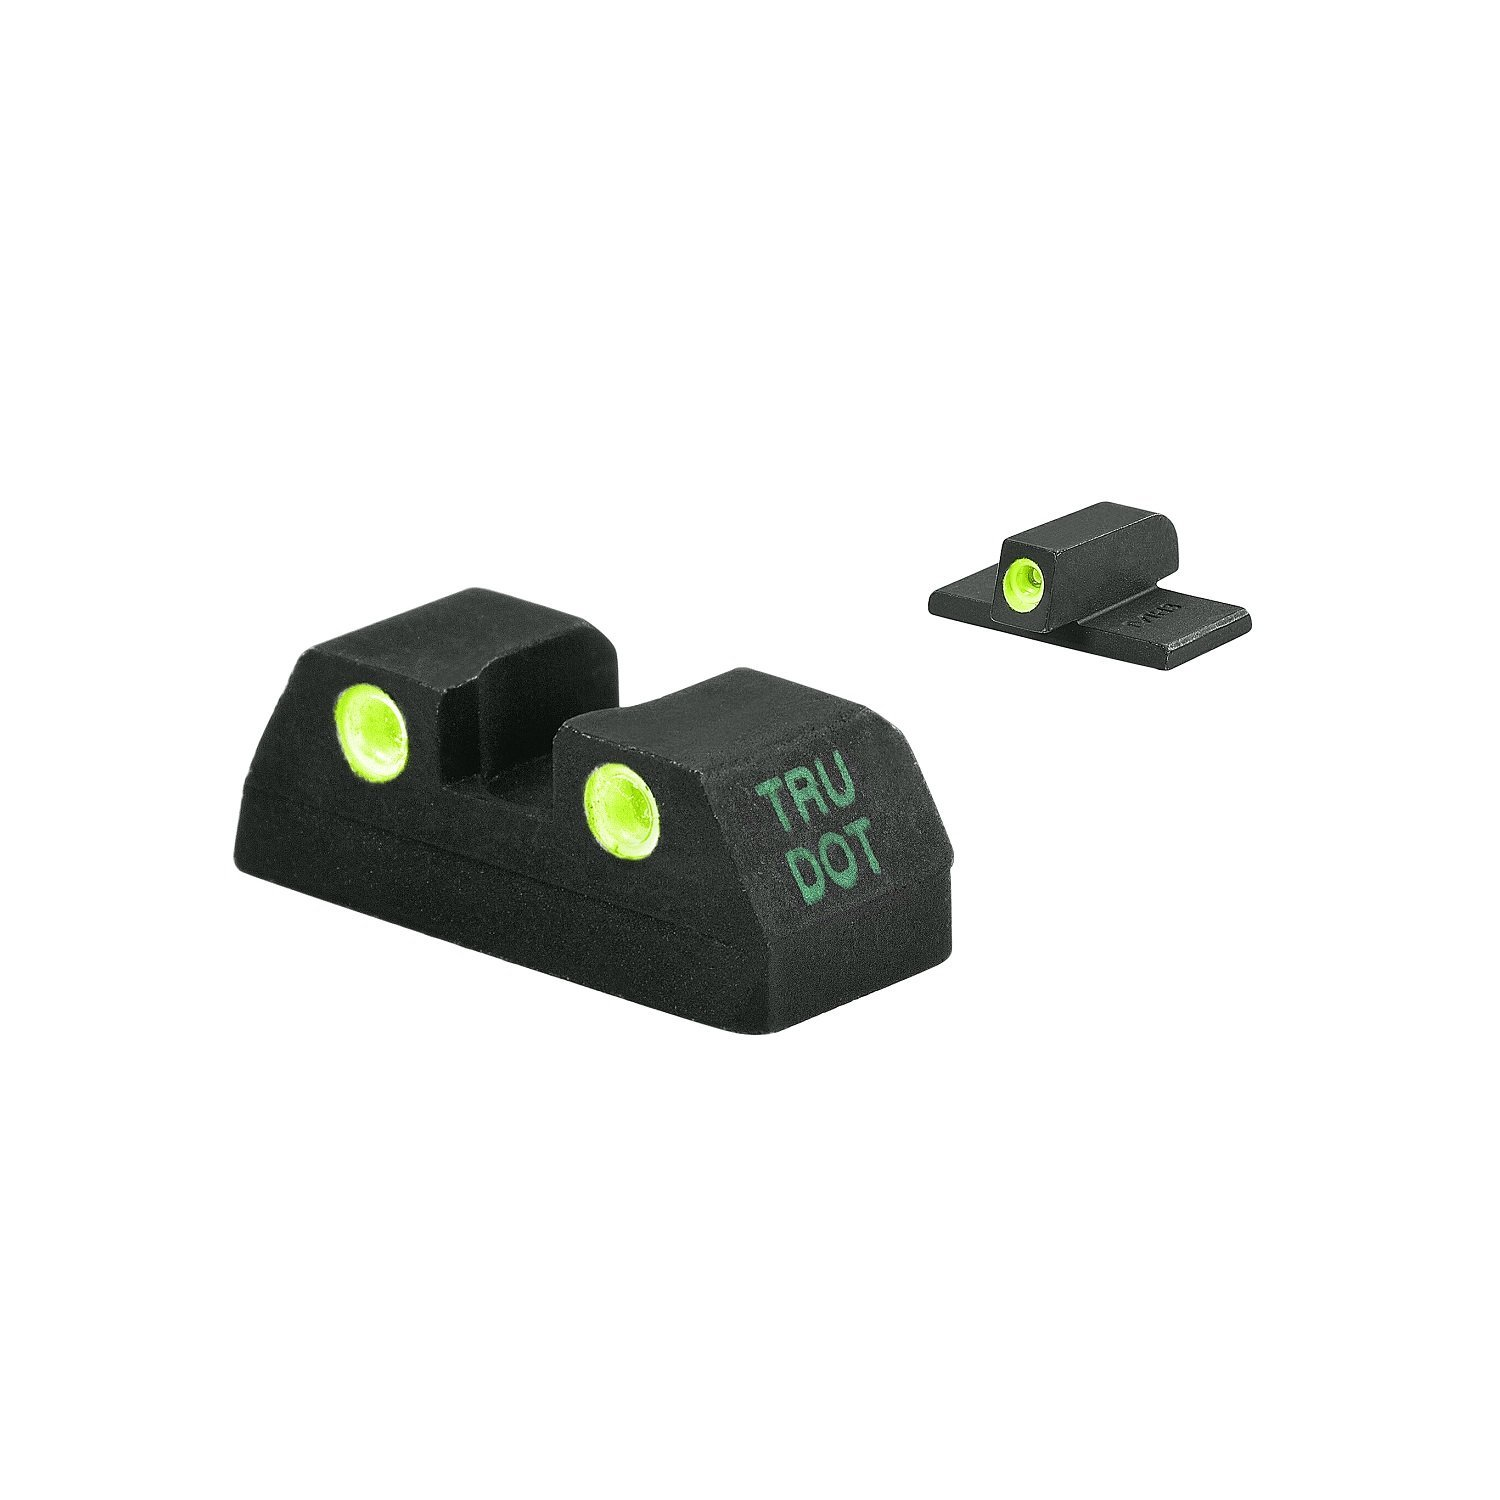 MAKO Kahr Tru-Dot Night Sight for K,P,MK,PM 9, 40, 45. Fixed Set with green rear and front sight. by Meprolight